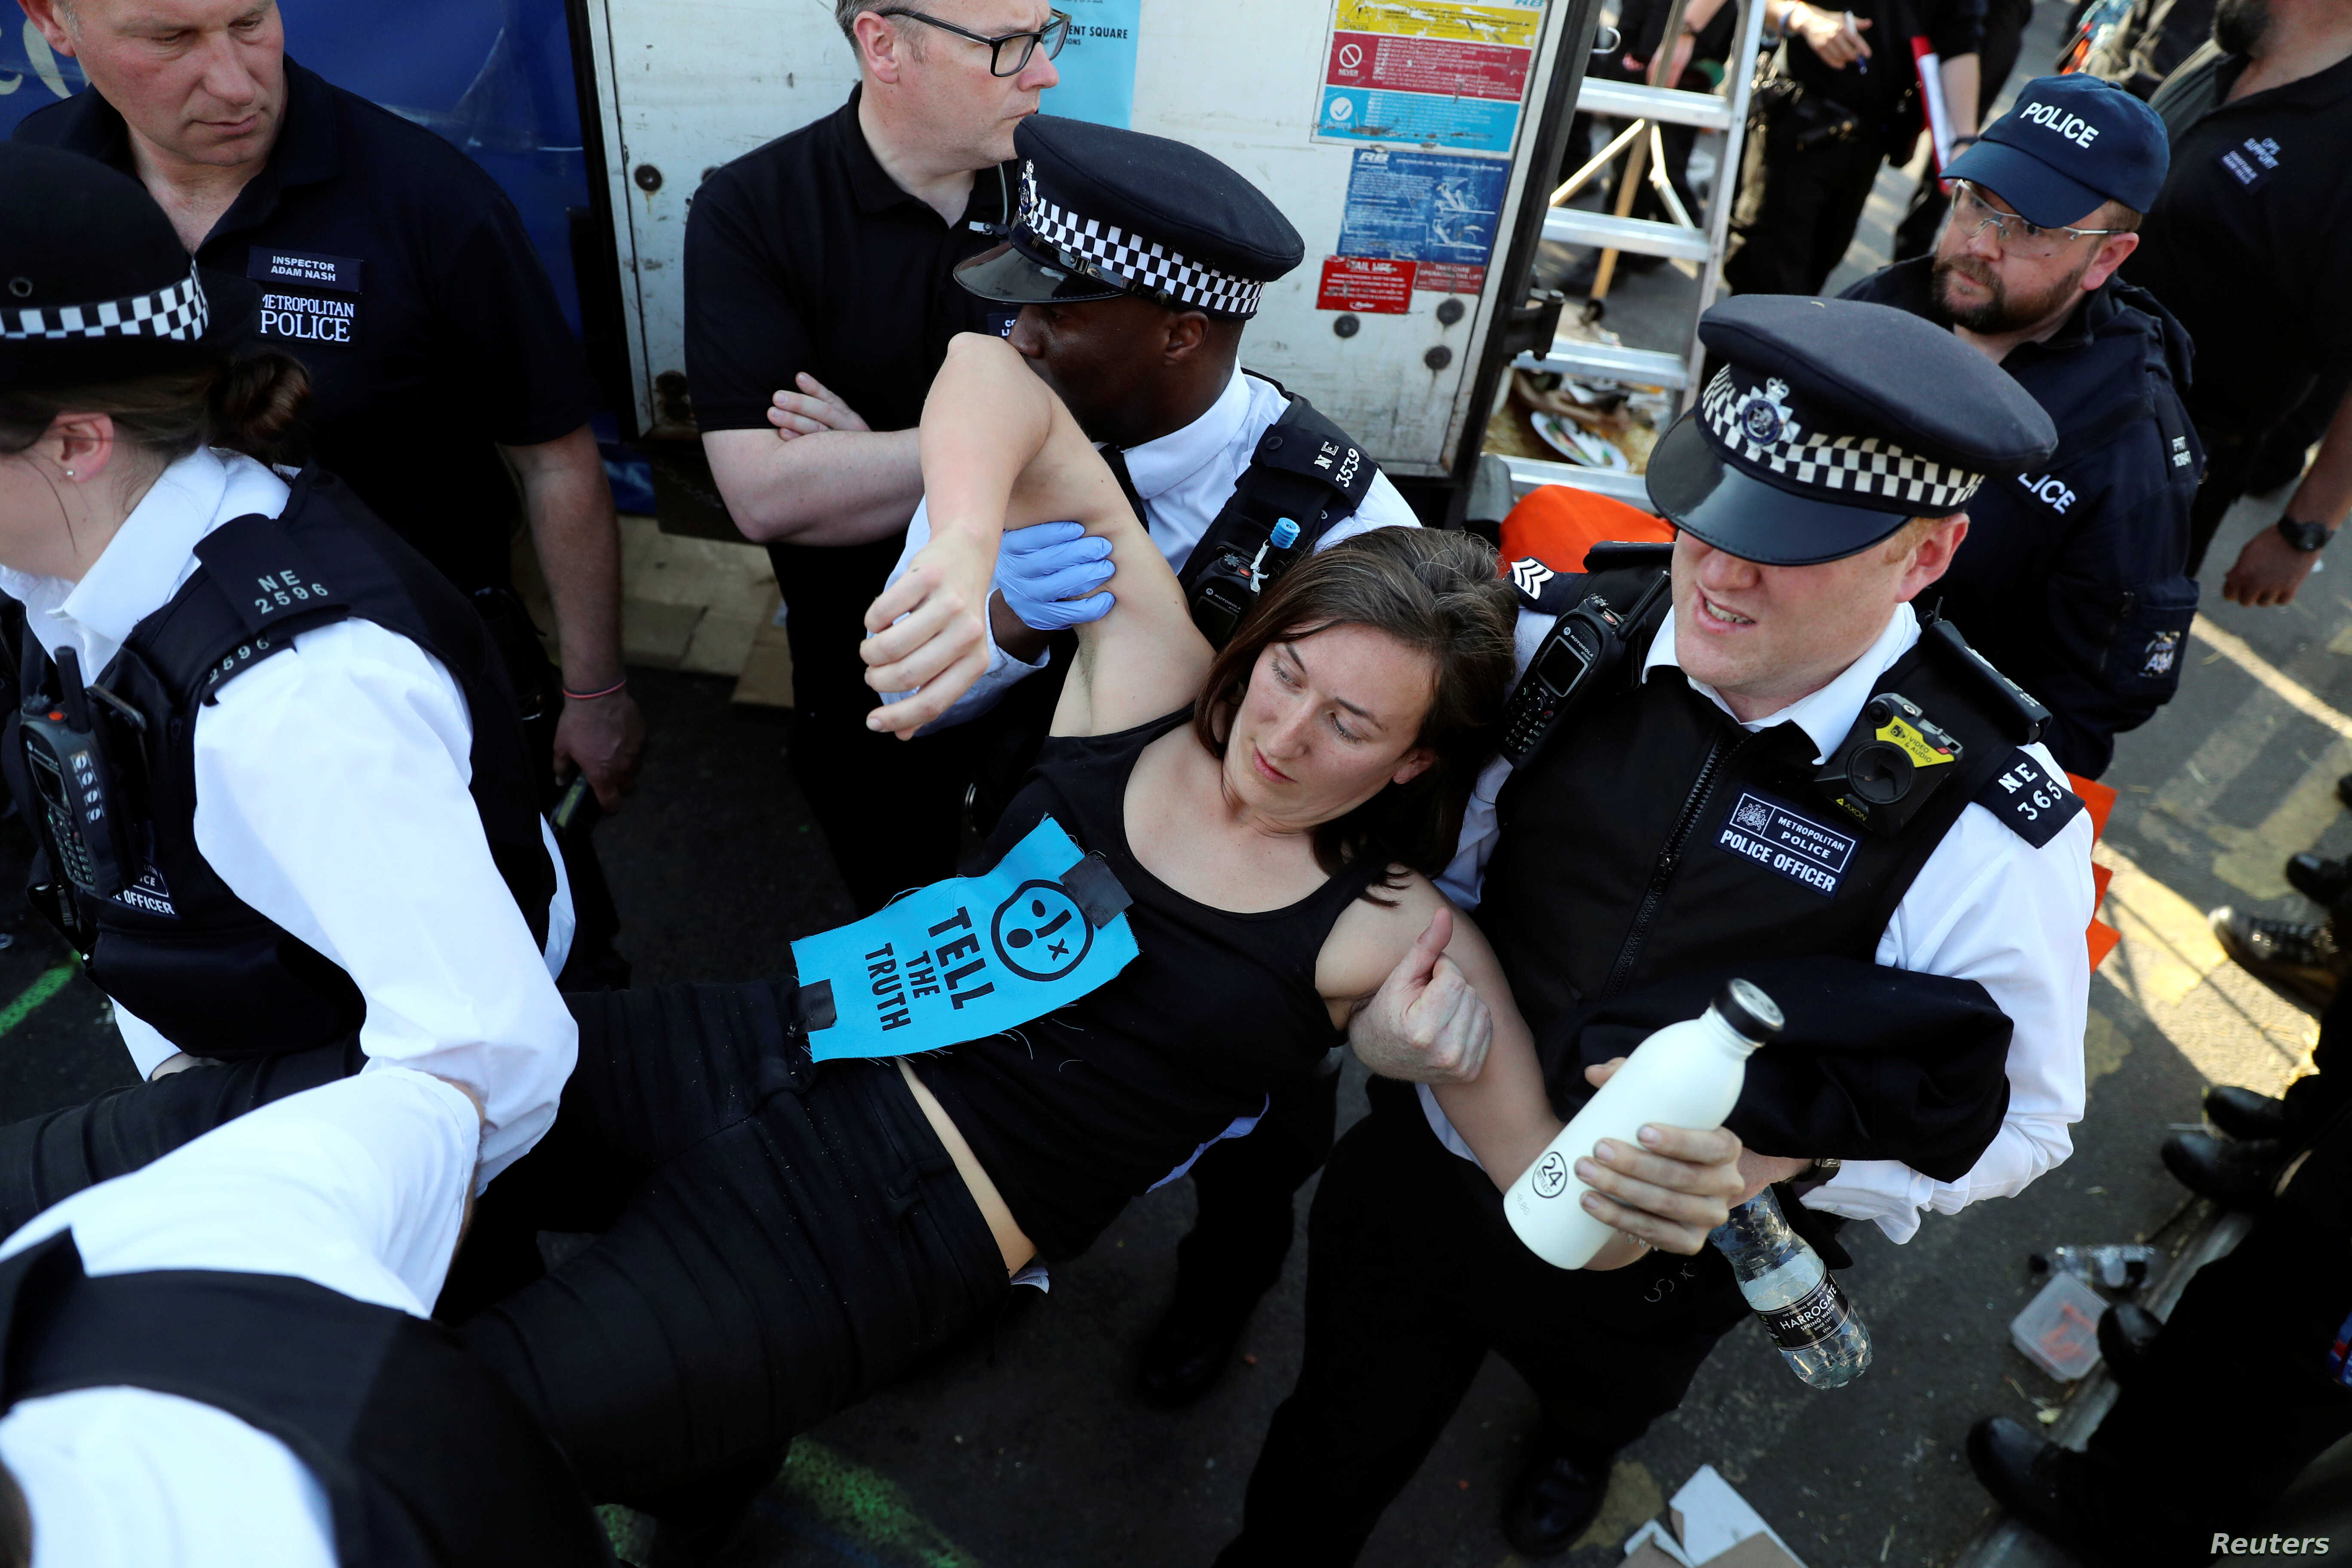 A climate change activist is detained during the Extinction Rebellion protest on Waterloo Bridge in London, Britain, April 20, 2019.